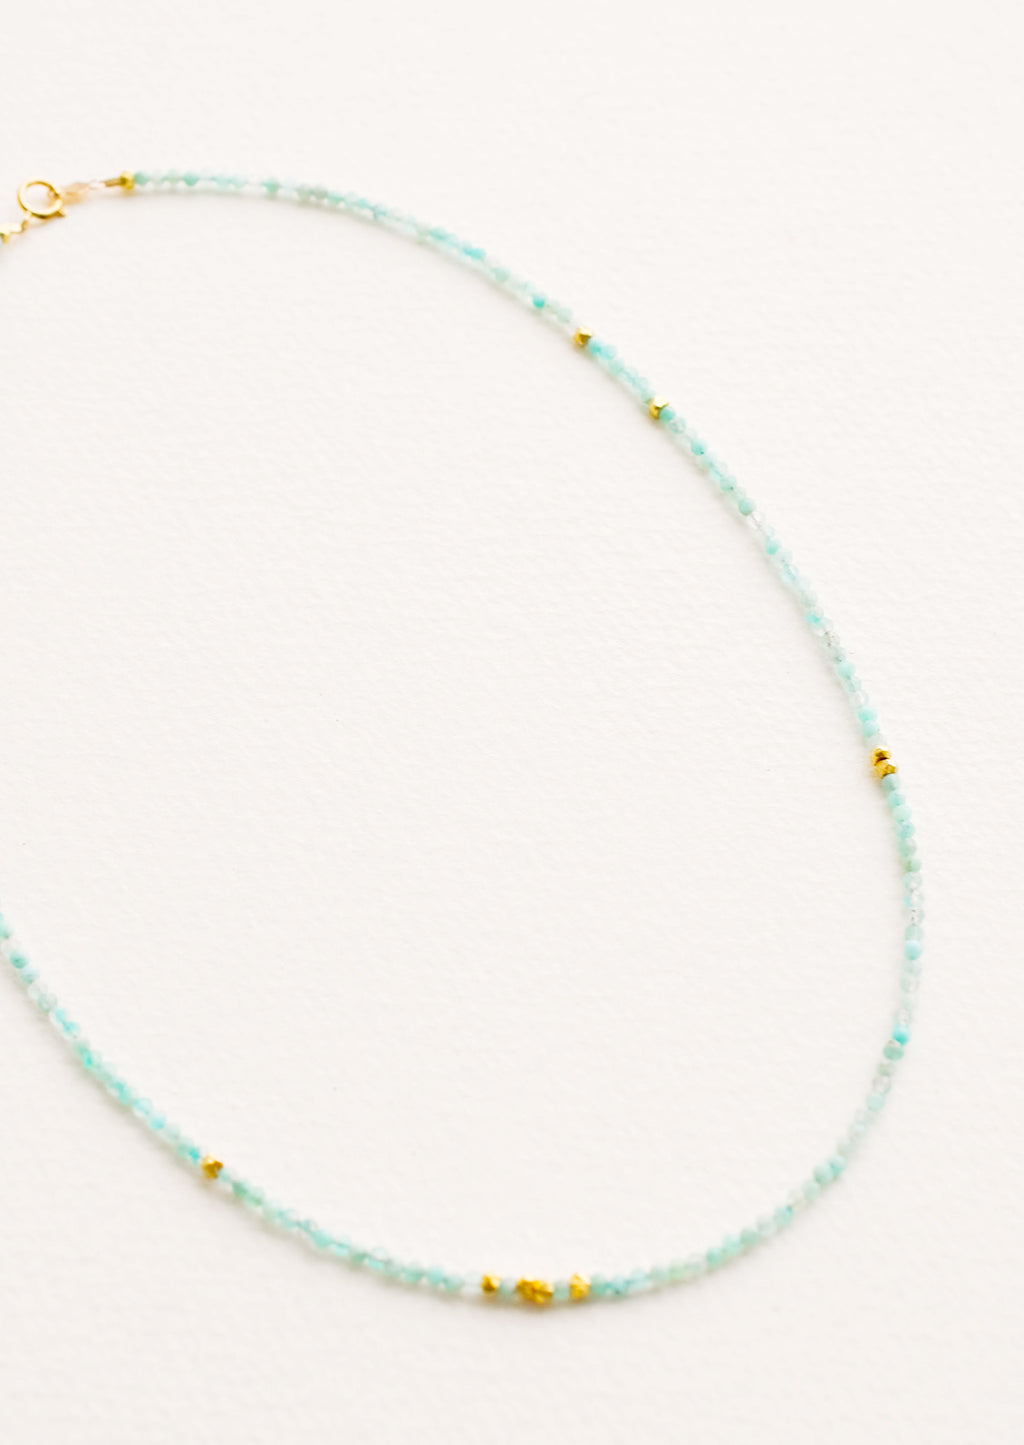 Aqua Chalcedony: A necklace of light blue gemstones, evenly spaced gold beads, and a gold clasp.